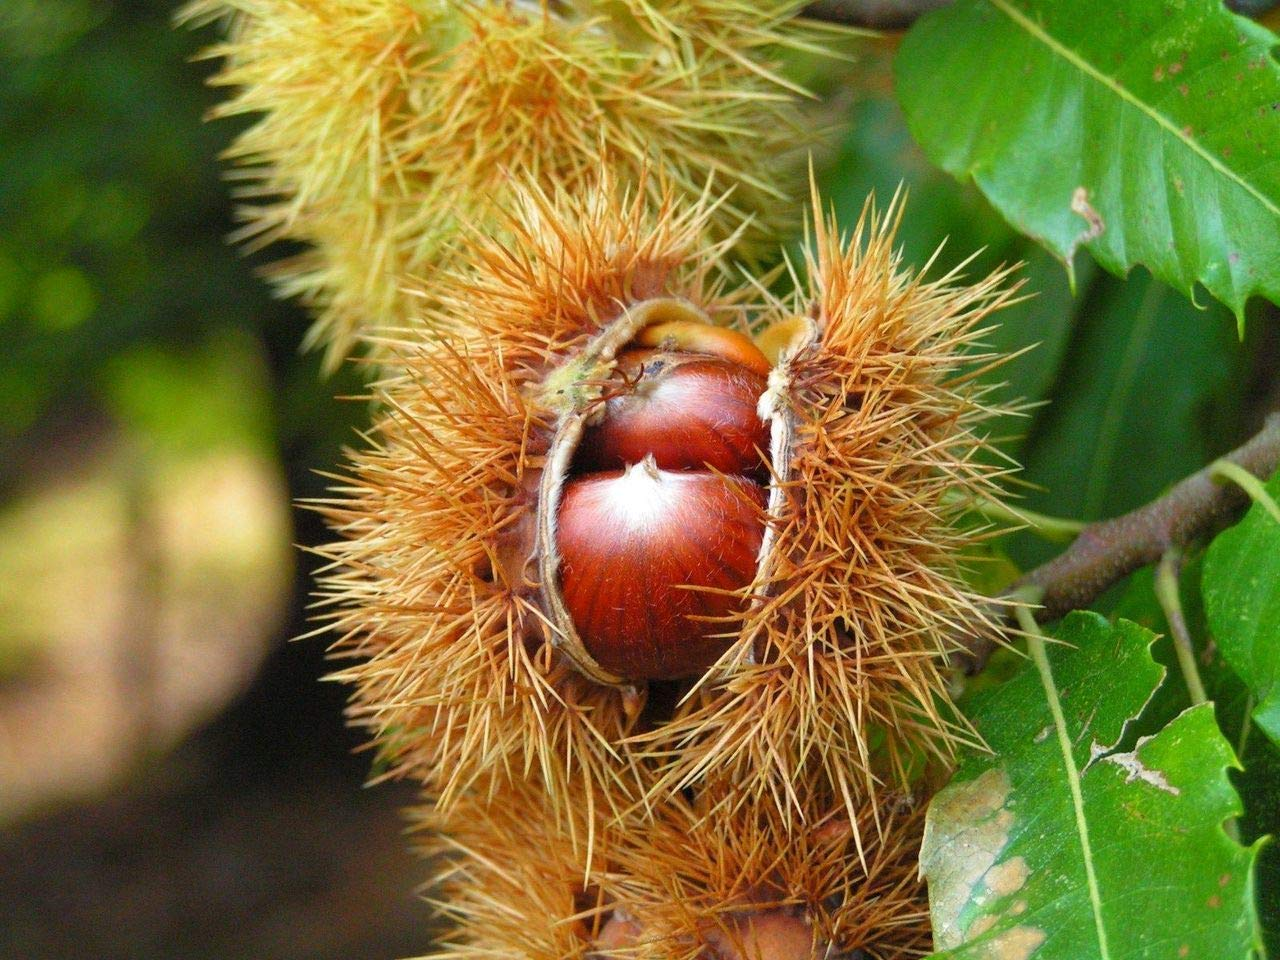 Edible Nuts to Roast 3fatpigs/® Castanea Sativa in a 2L Pot 1 Sweet Chestnut Tree 2-3ft